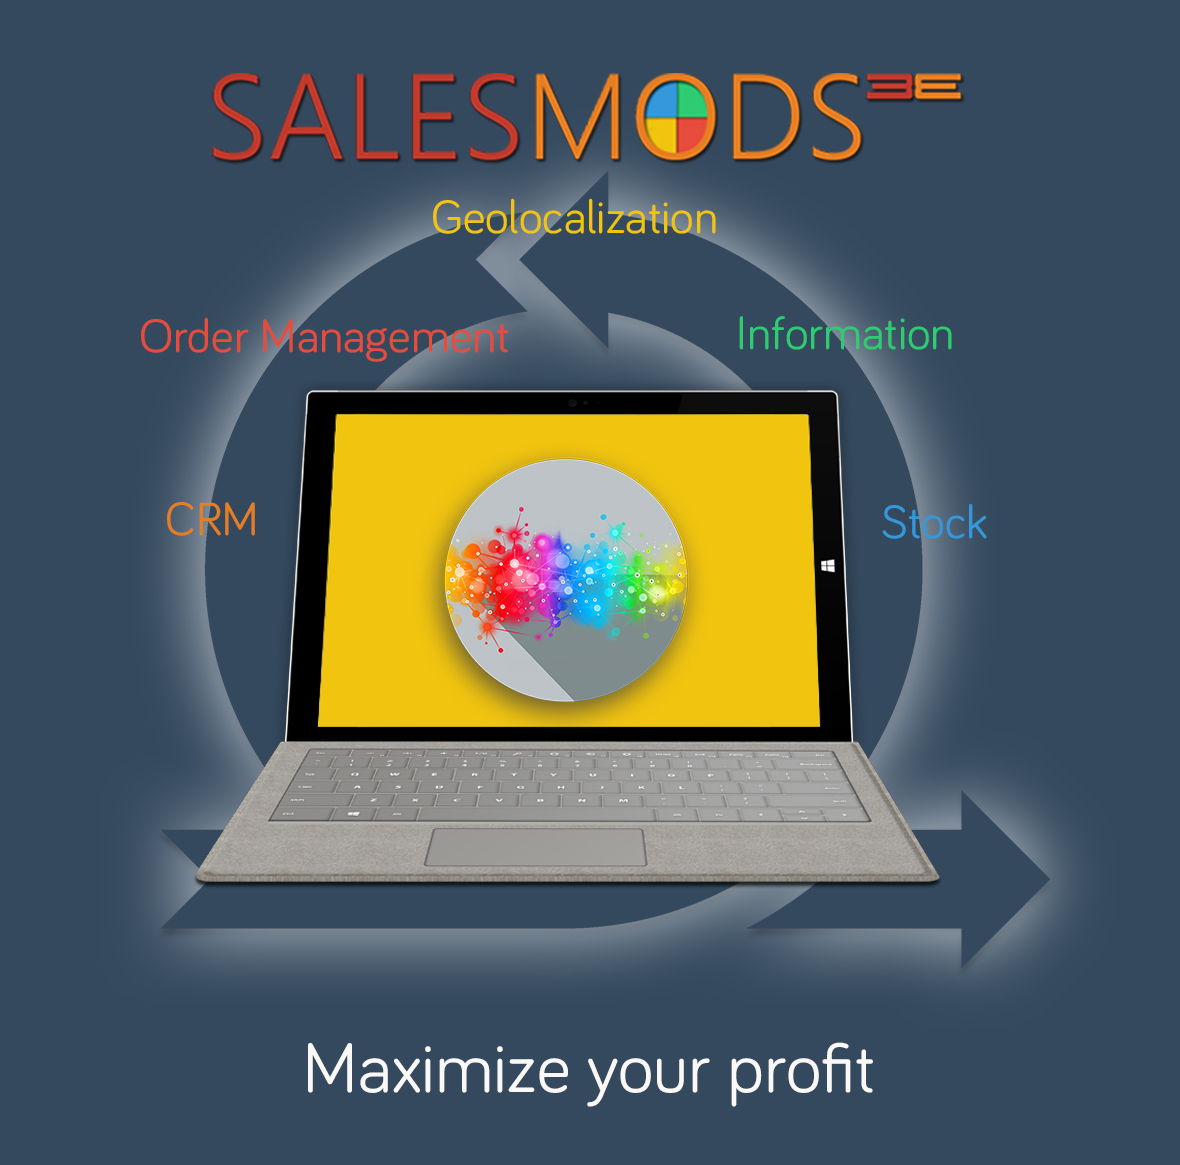 More information about your customized Mods (Microapps) in SalesMods 3E: integrate your existing IT solutions (ERP, CRM) with SalsMods 3E to present new data to your clients which increase customer satisfaction and your sales